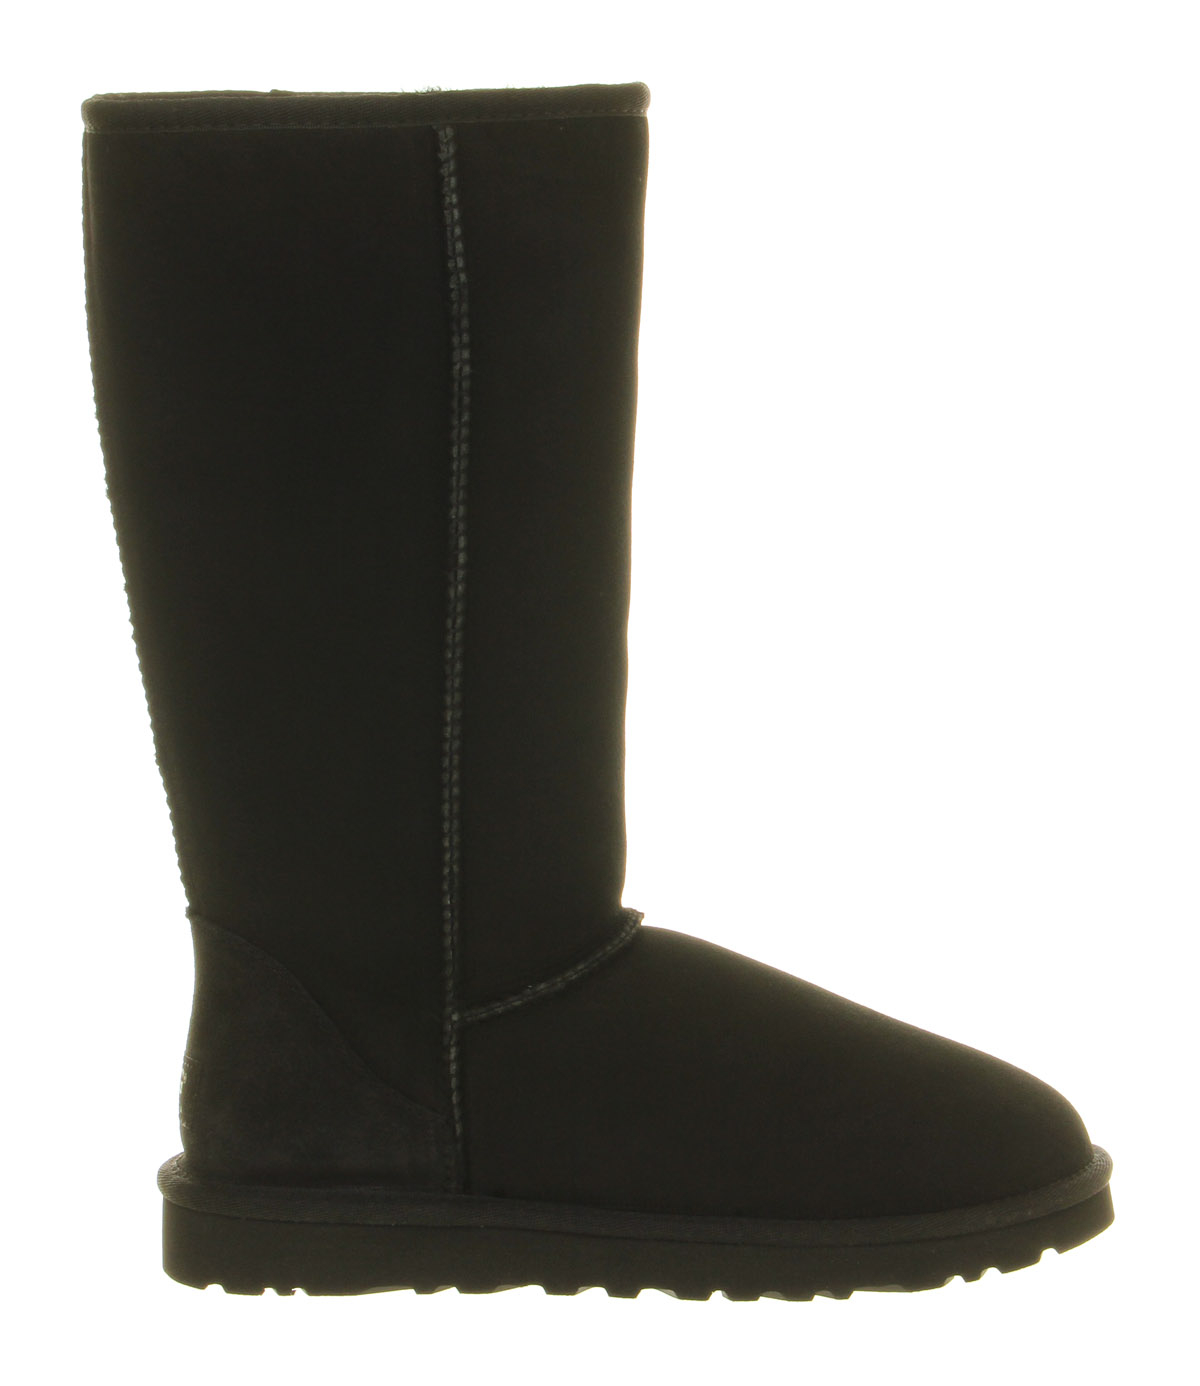 2398963a9ec Mens classic tall ugg boots - Music store north york